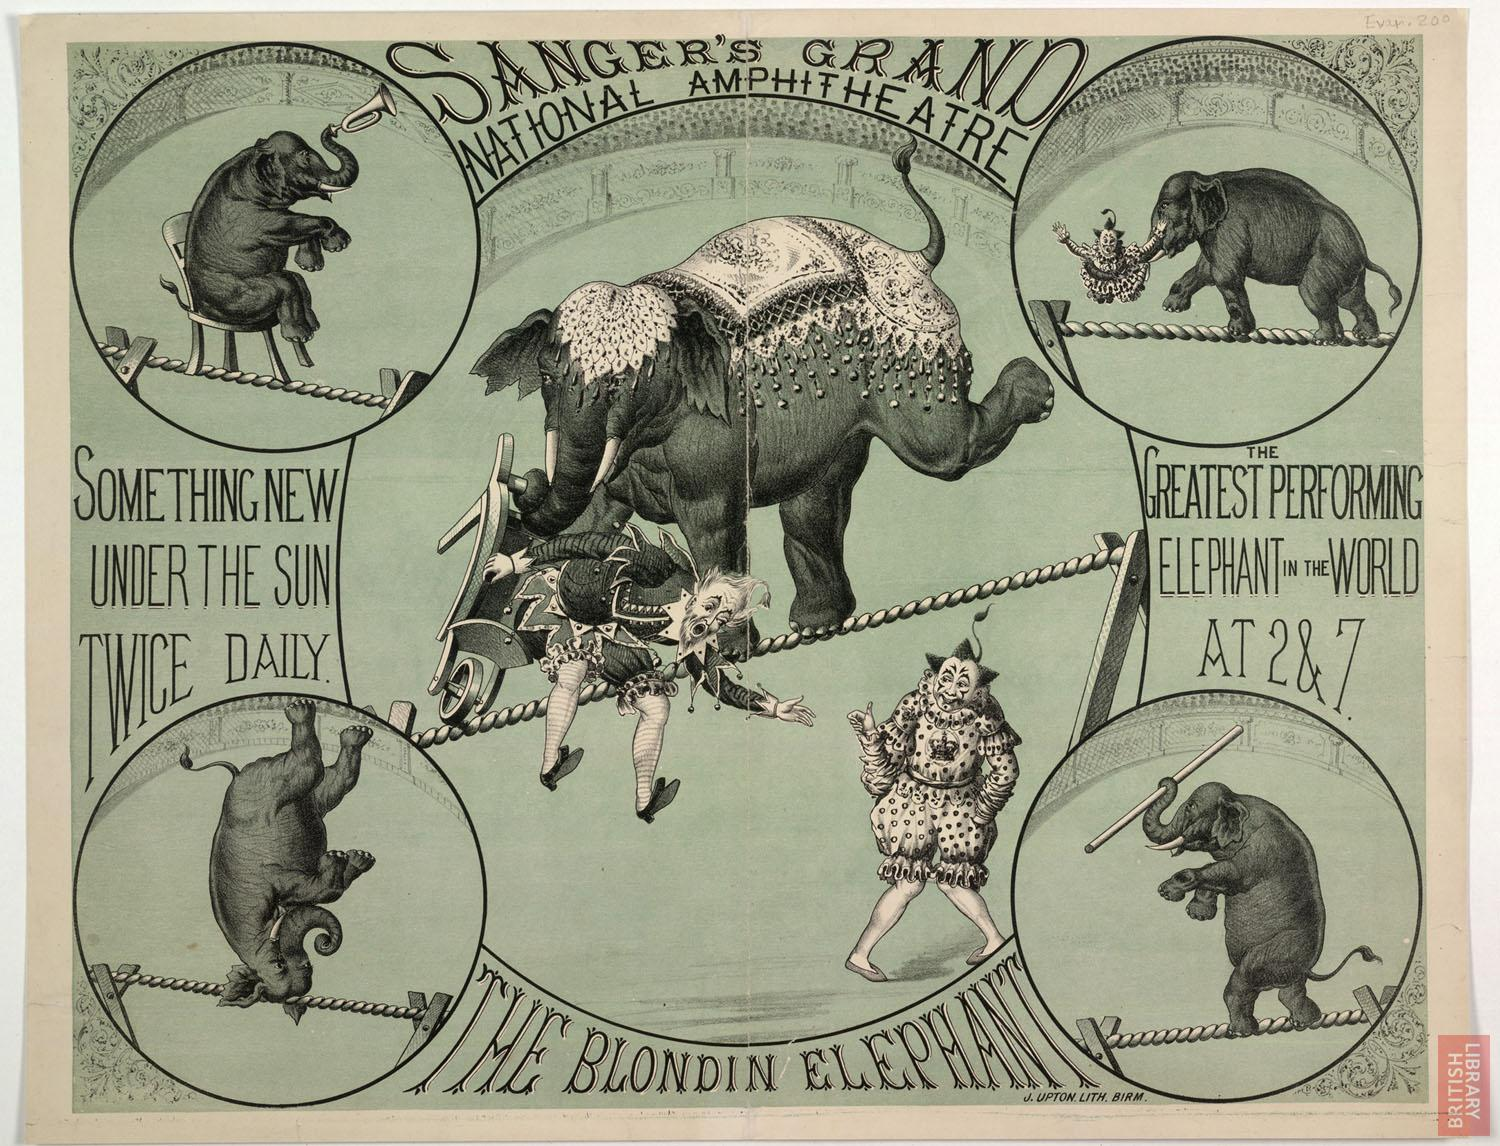 Poster advertising a performing elephant at Sanger's Grand National Amphitheatre, London